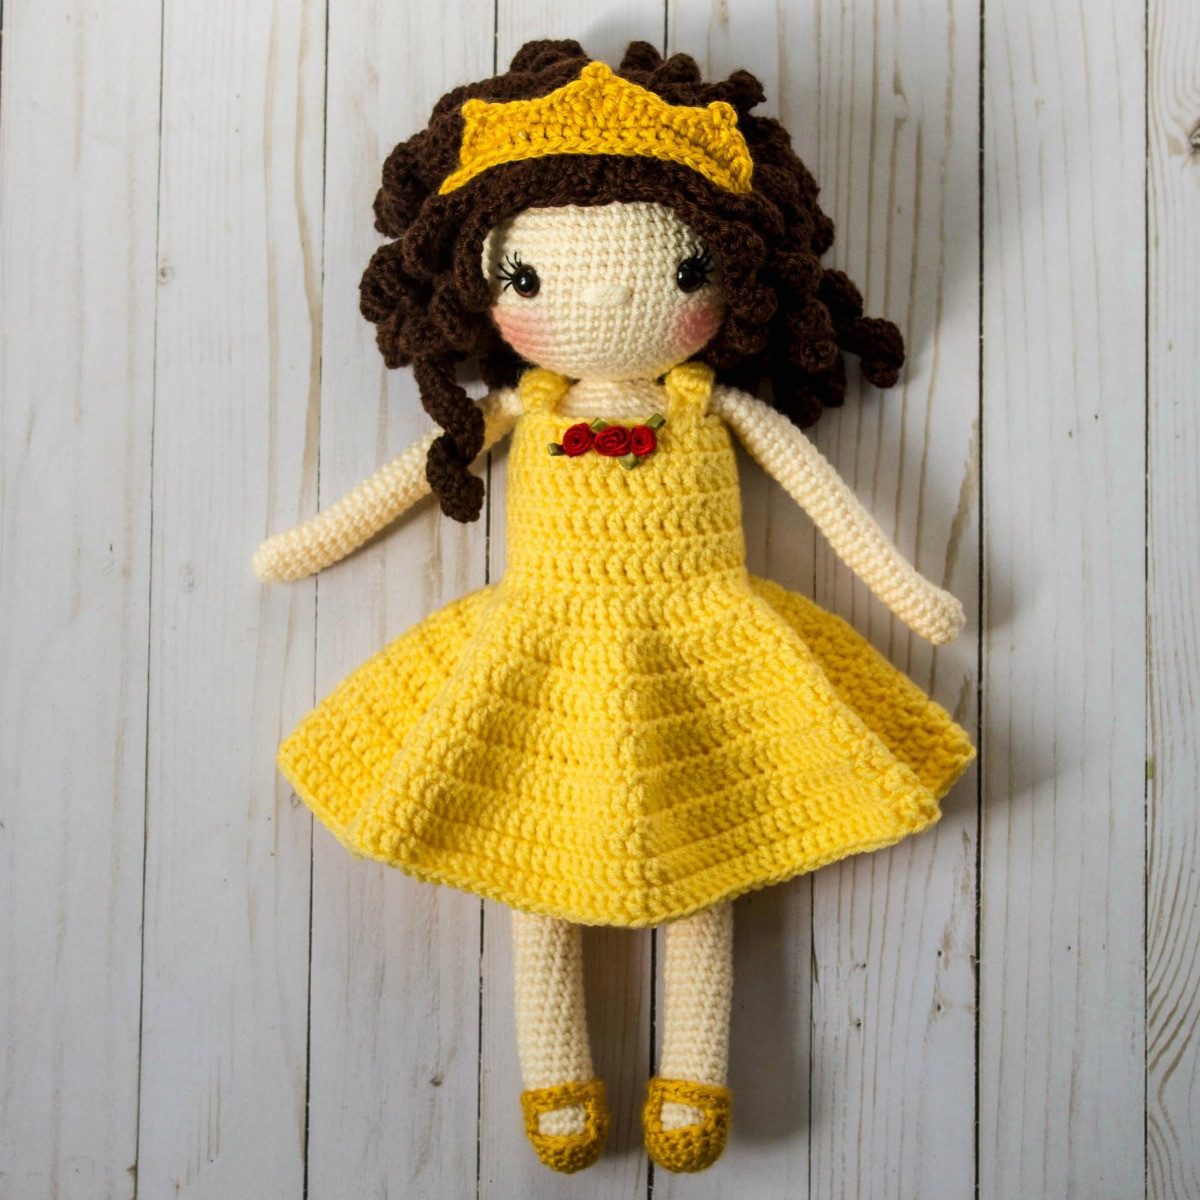 Doll Patterns Beautiful Free Crochet Doll Pattern the Friendly sophie Of Doll Patterns Fresh Spirit Dolls